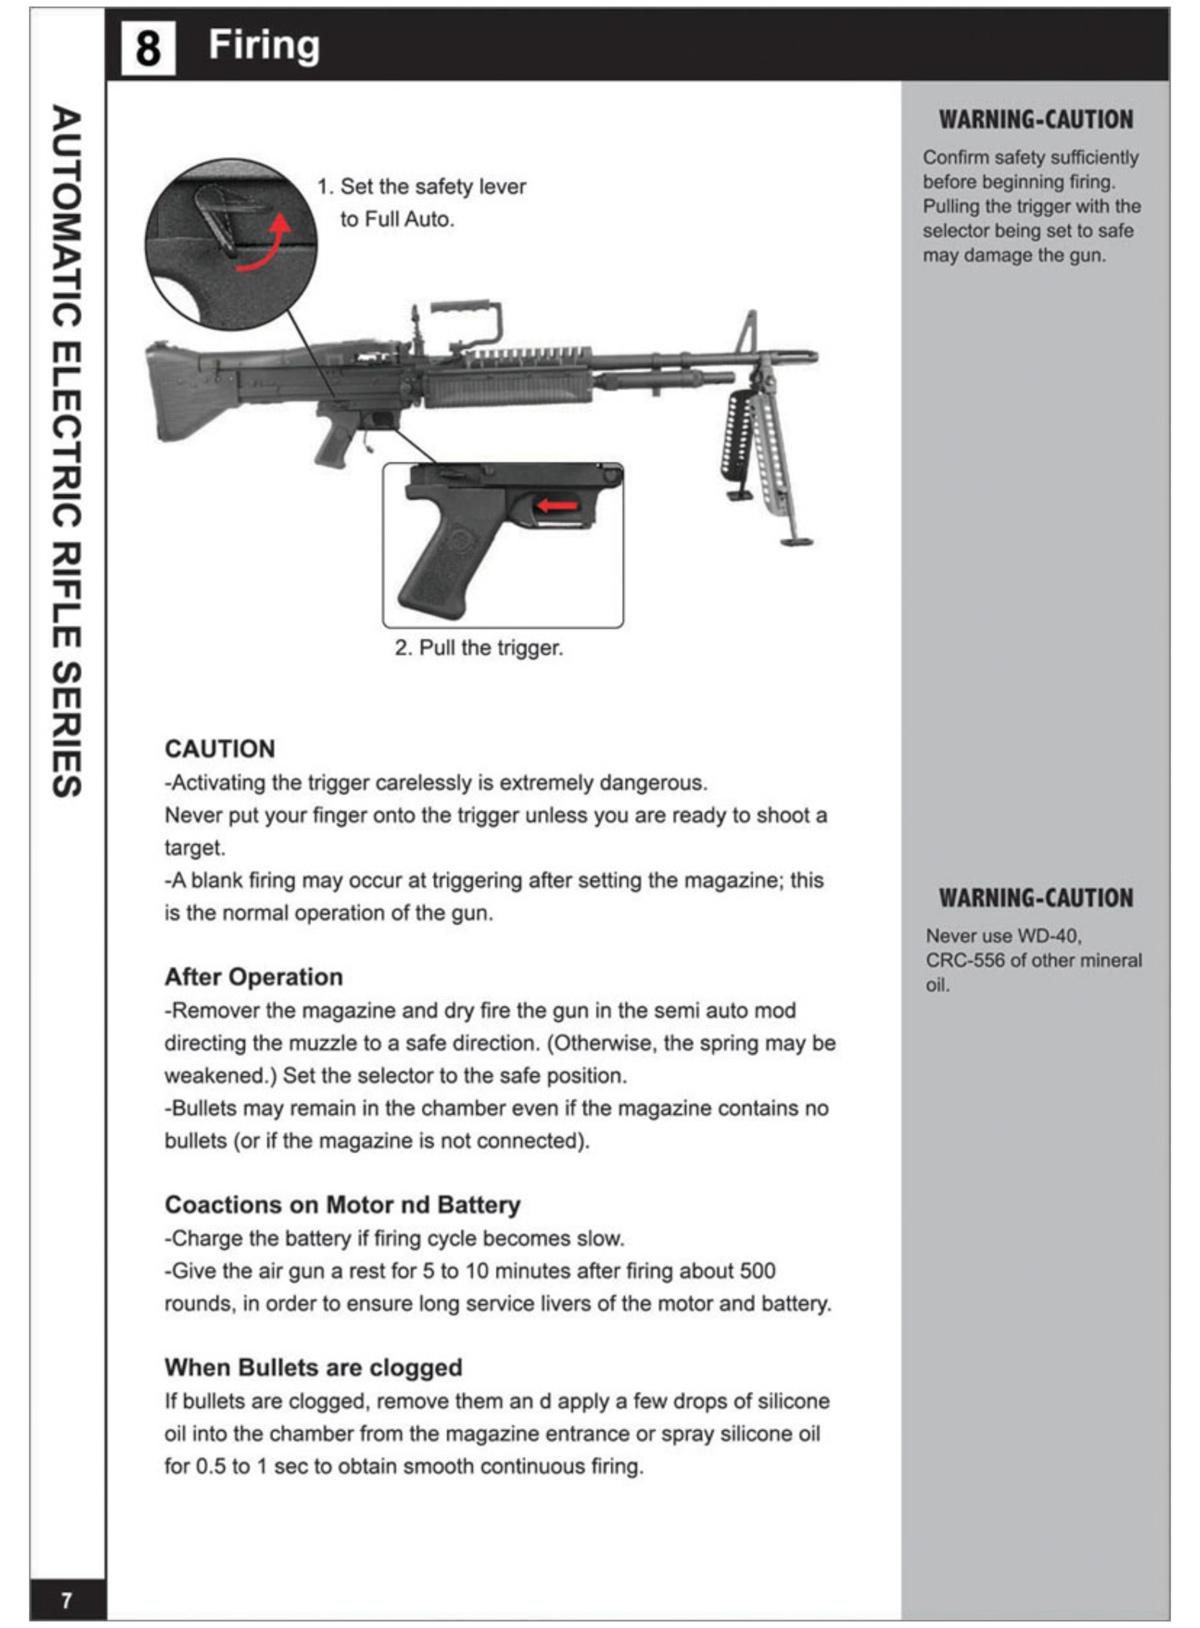 FREE DOWNLOAD - Manual for A&K M60 VN Airsoft AEG Instruction / User Manual